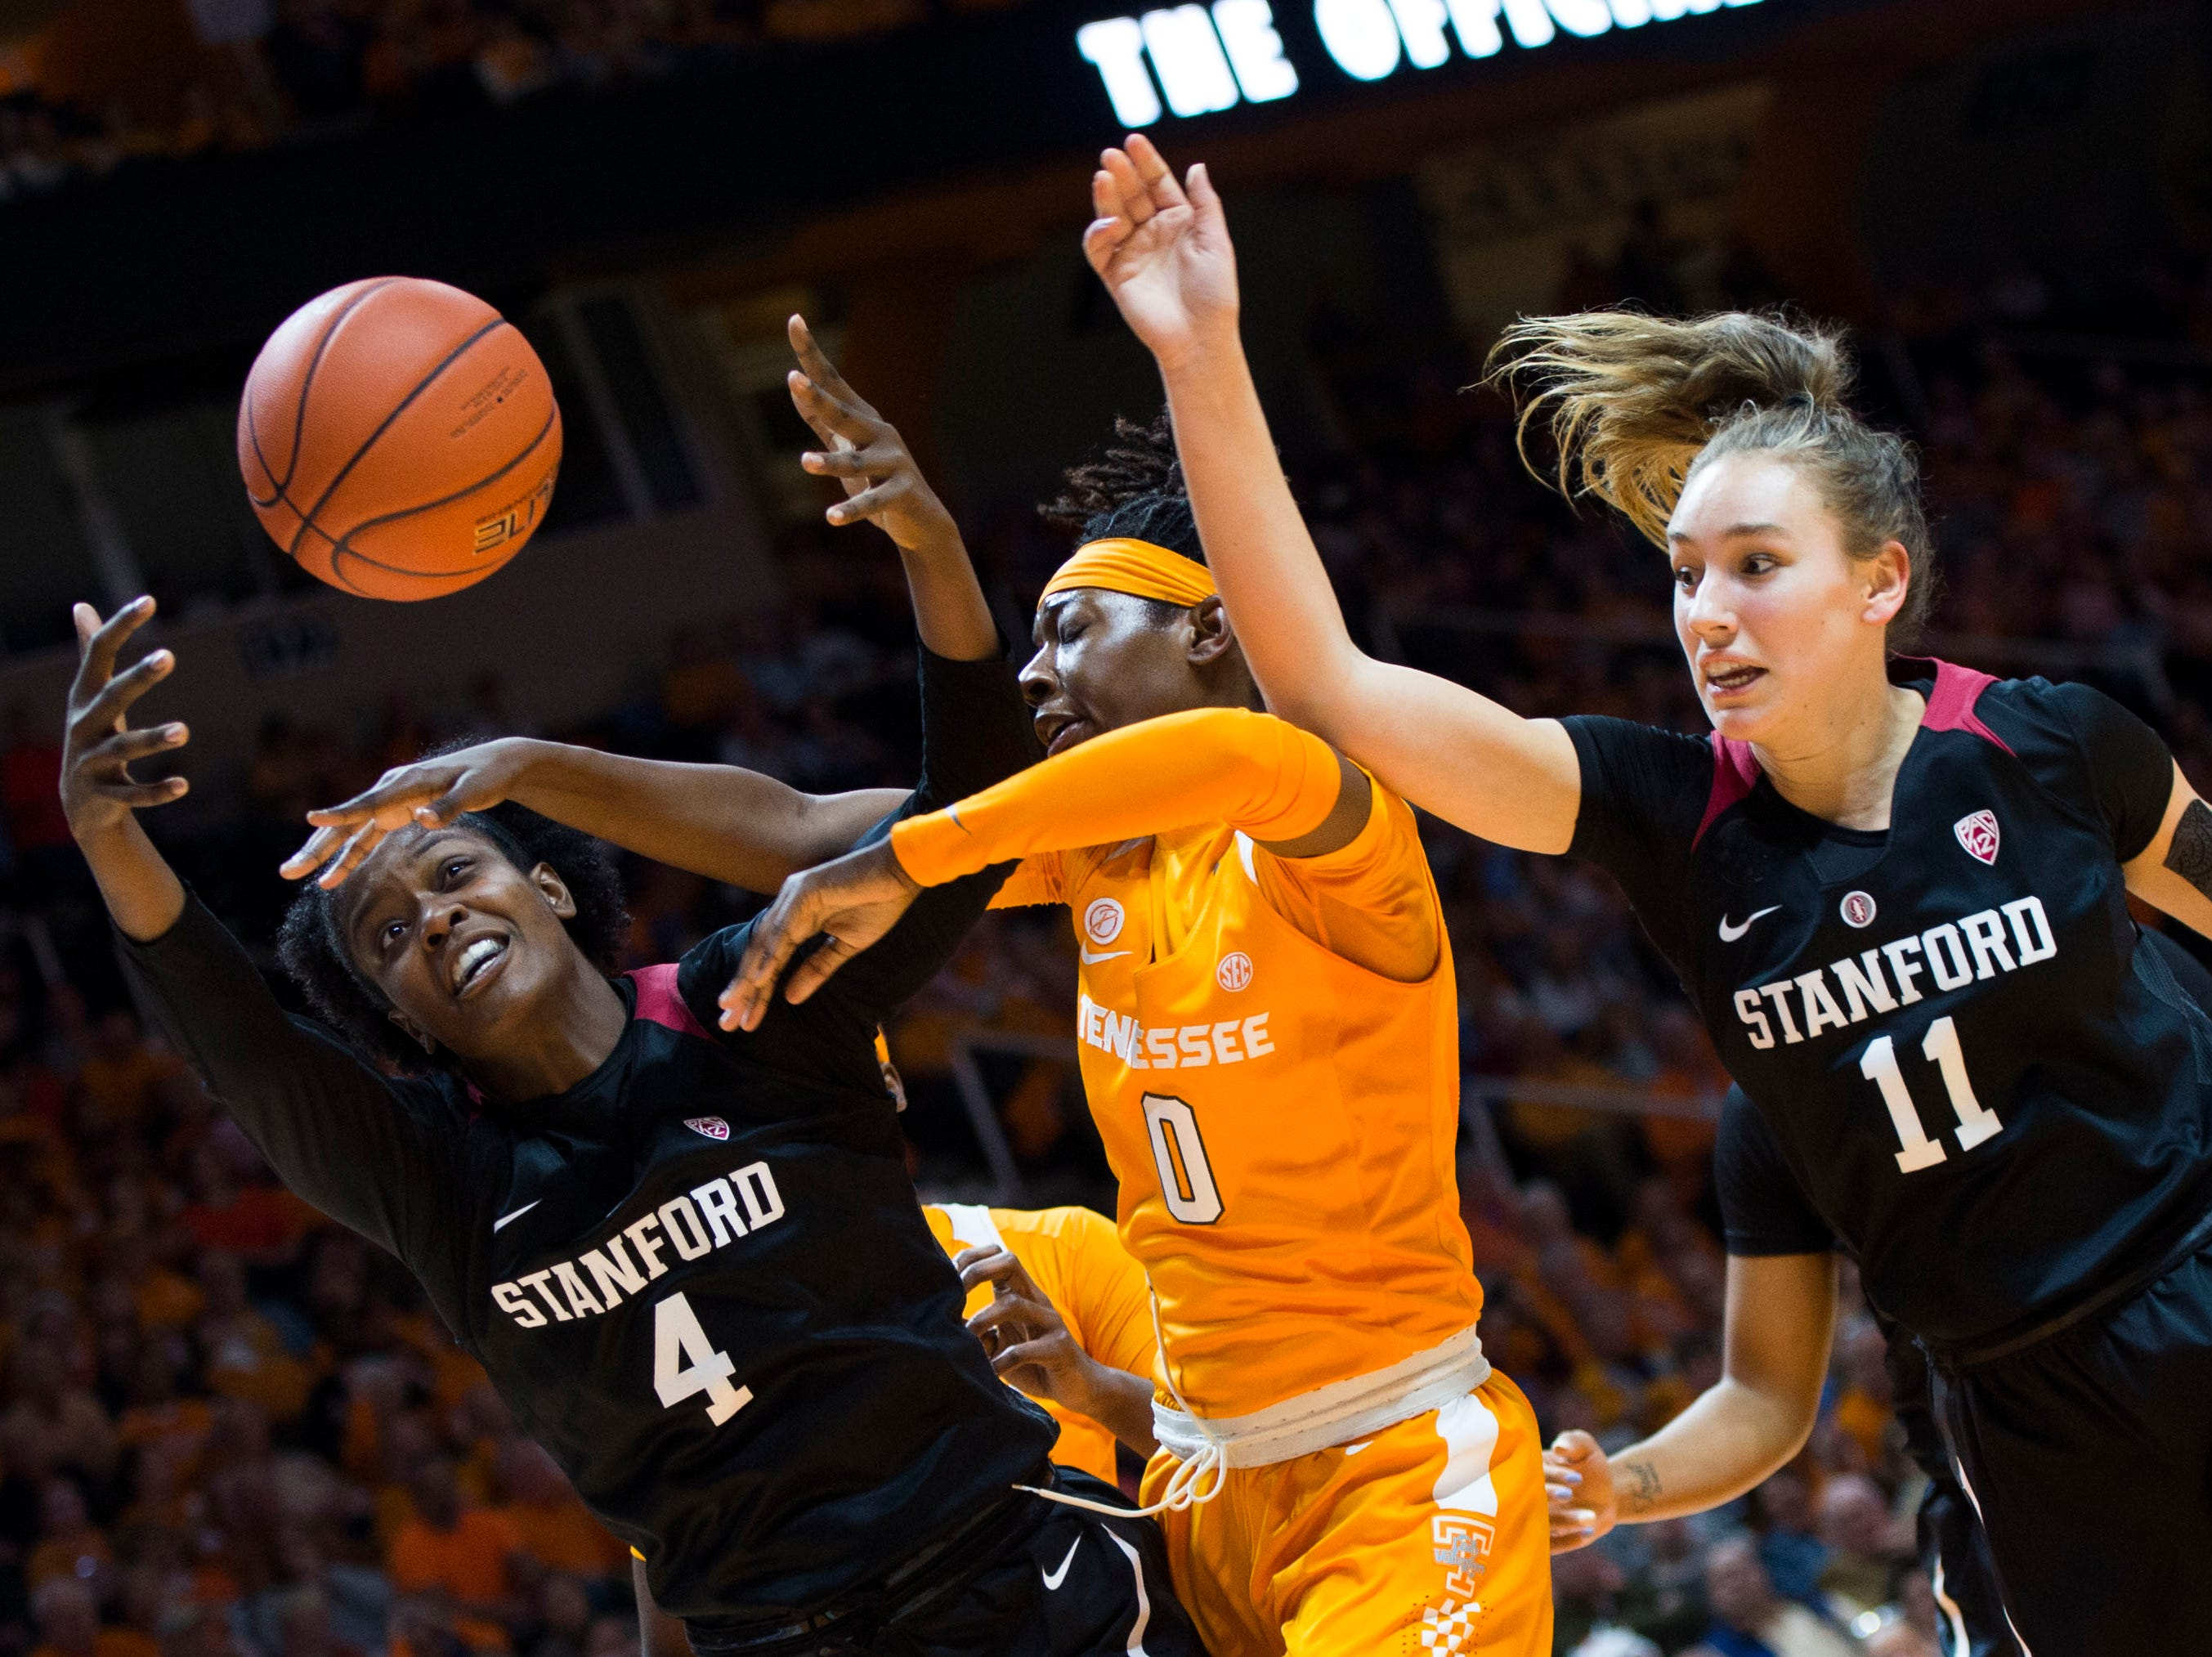 Tennessee's Rennia Davis (0) blocks a shot by a Stanford player during a women's basketball game between Tennessee and Stanford at Thompson-Boling Arena Tuesday, Dec. 18, 2018.